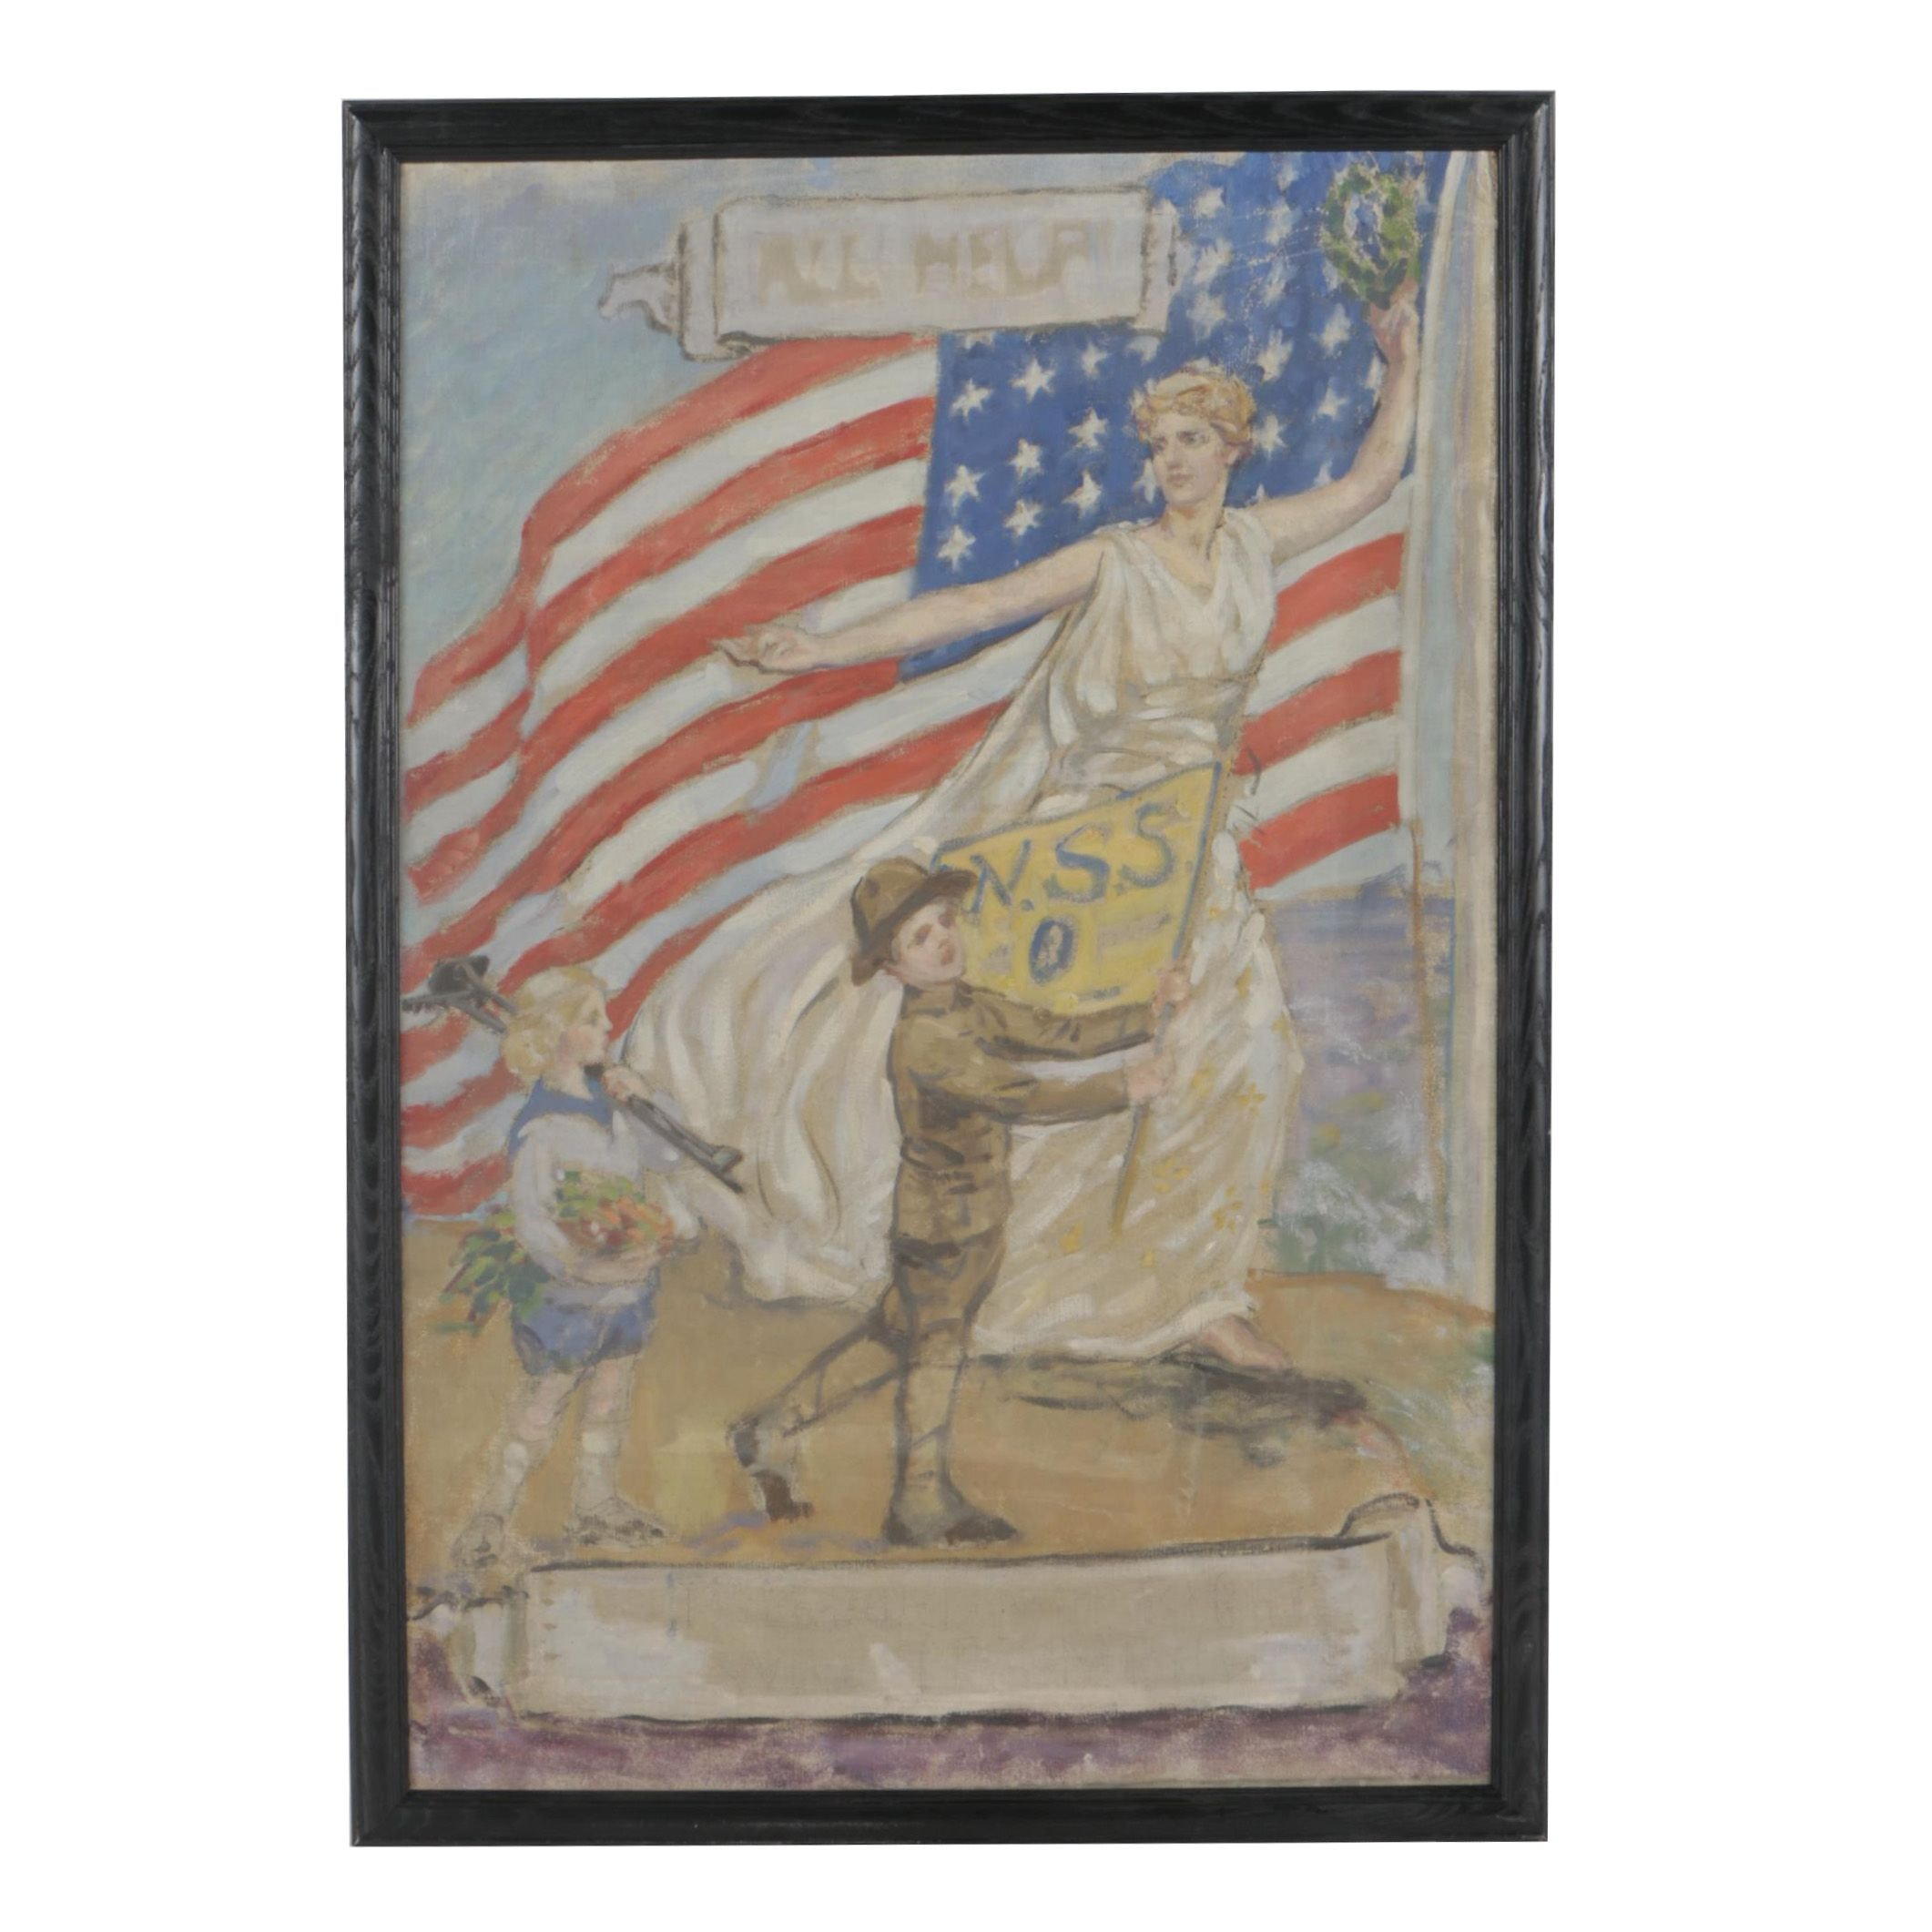 Early 20th Century Patriotic Oil Painting With Personification of Columbia